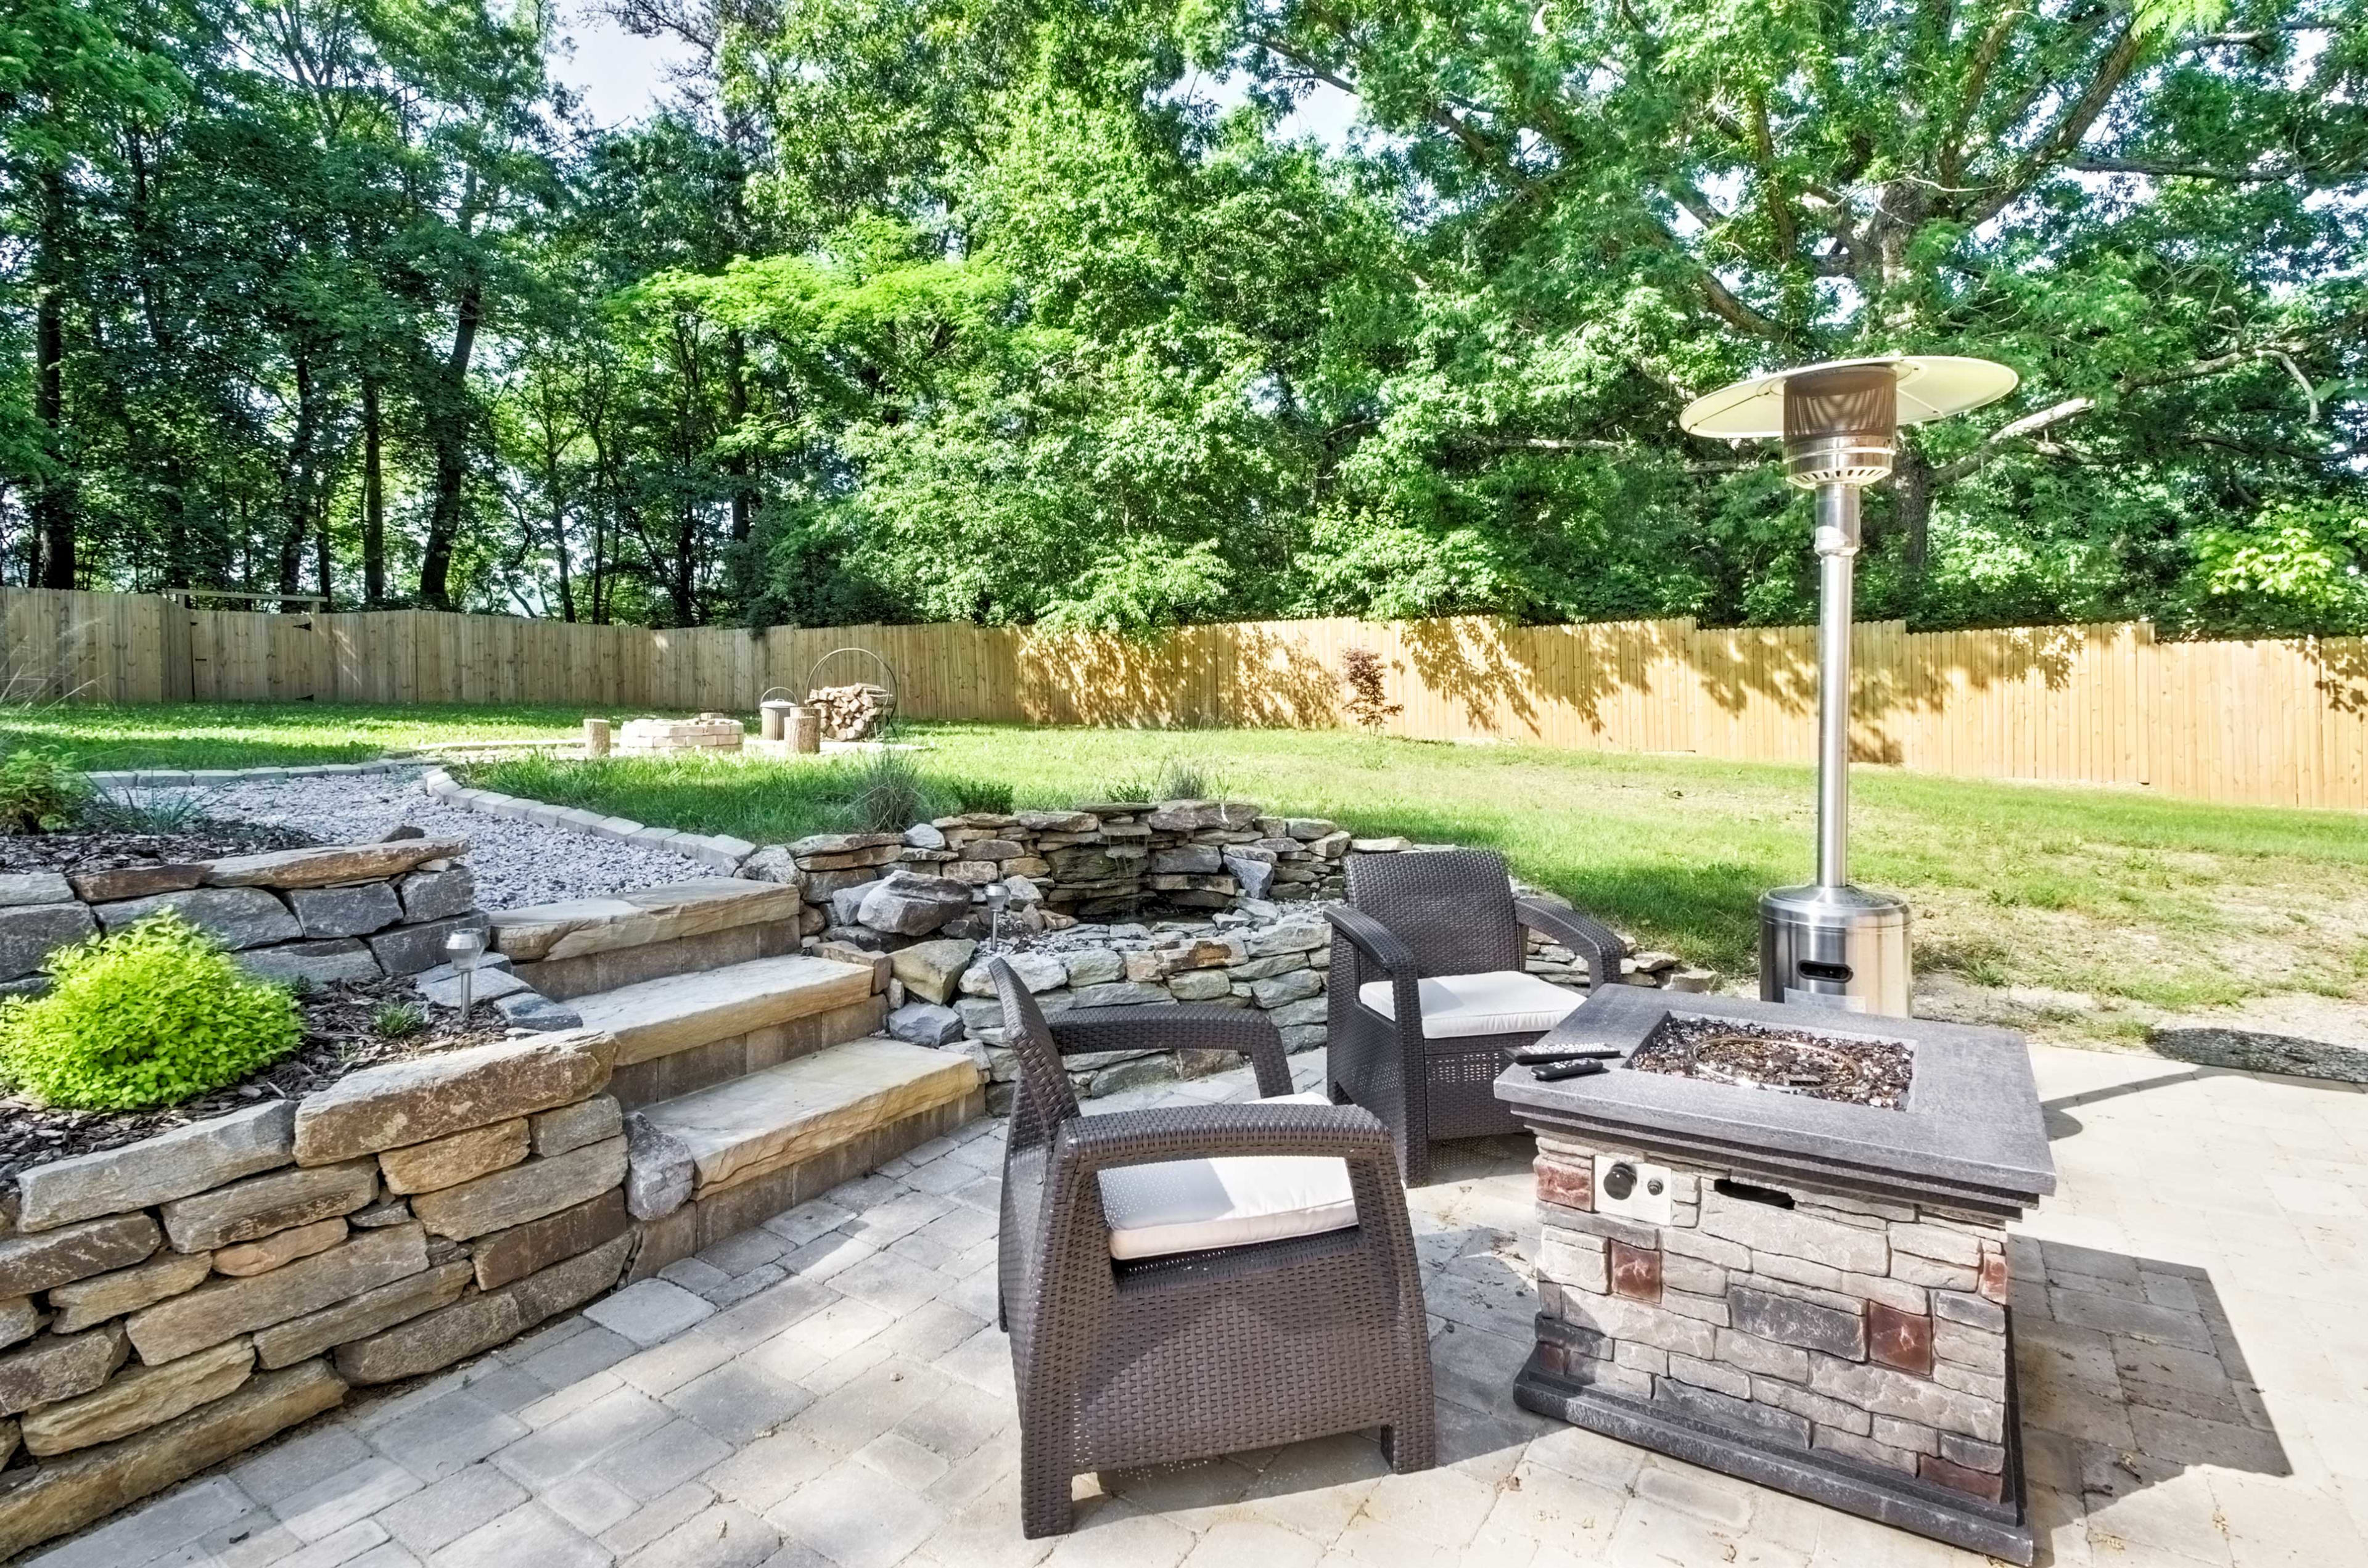 The spacious and manicured yard offers a great seating area, outdoor fire pit and sauna.